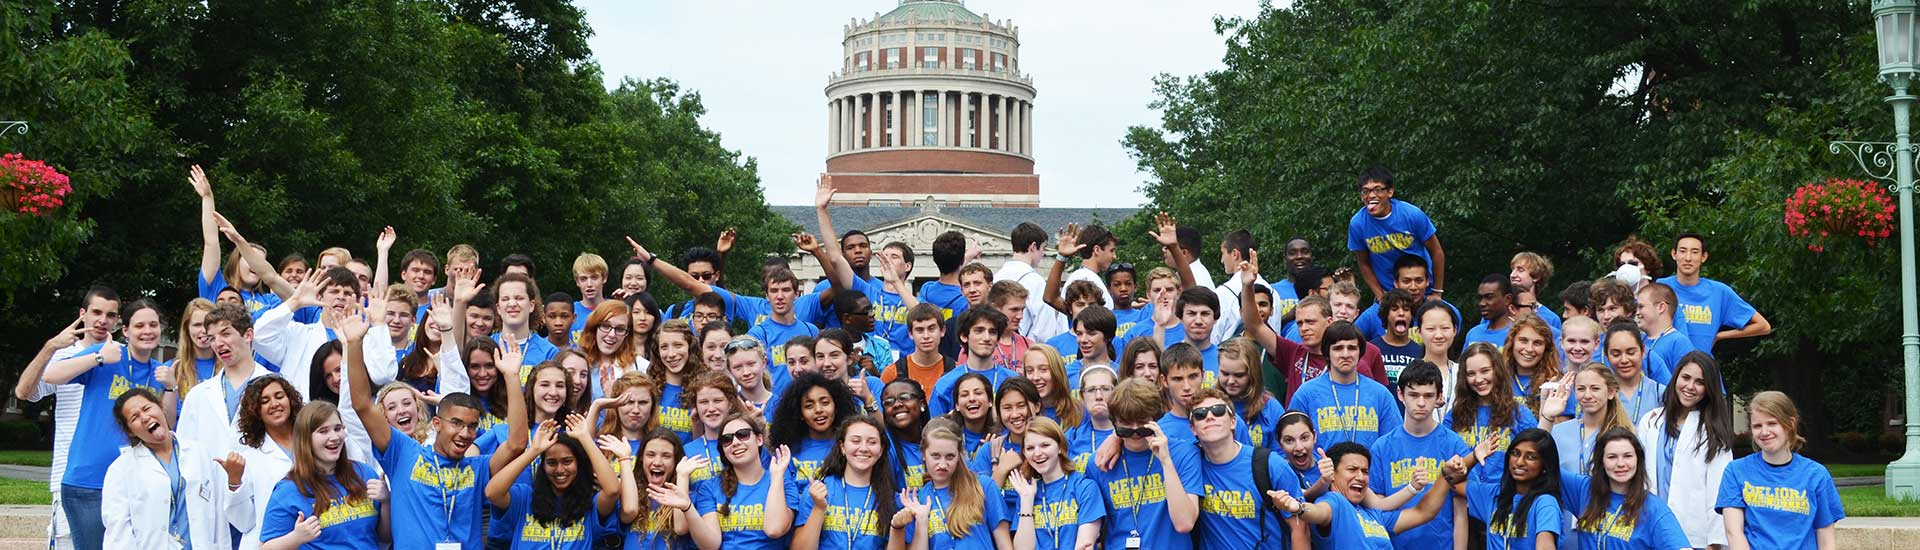 A large group of Pre-College students pose in front of Rush Rhees Library